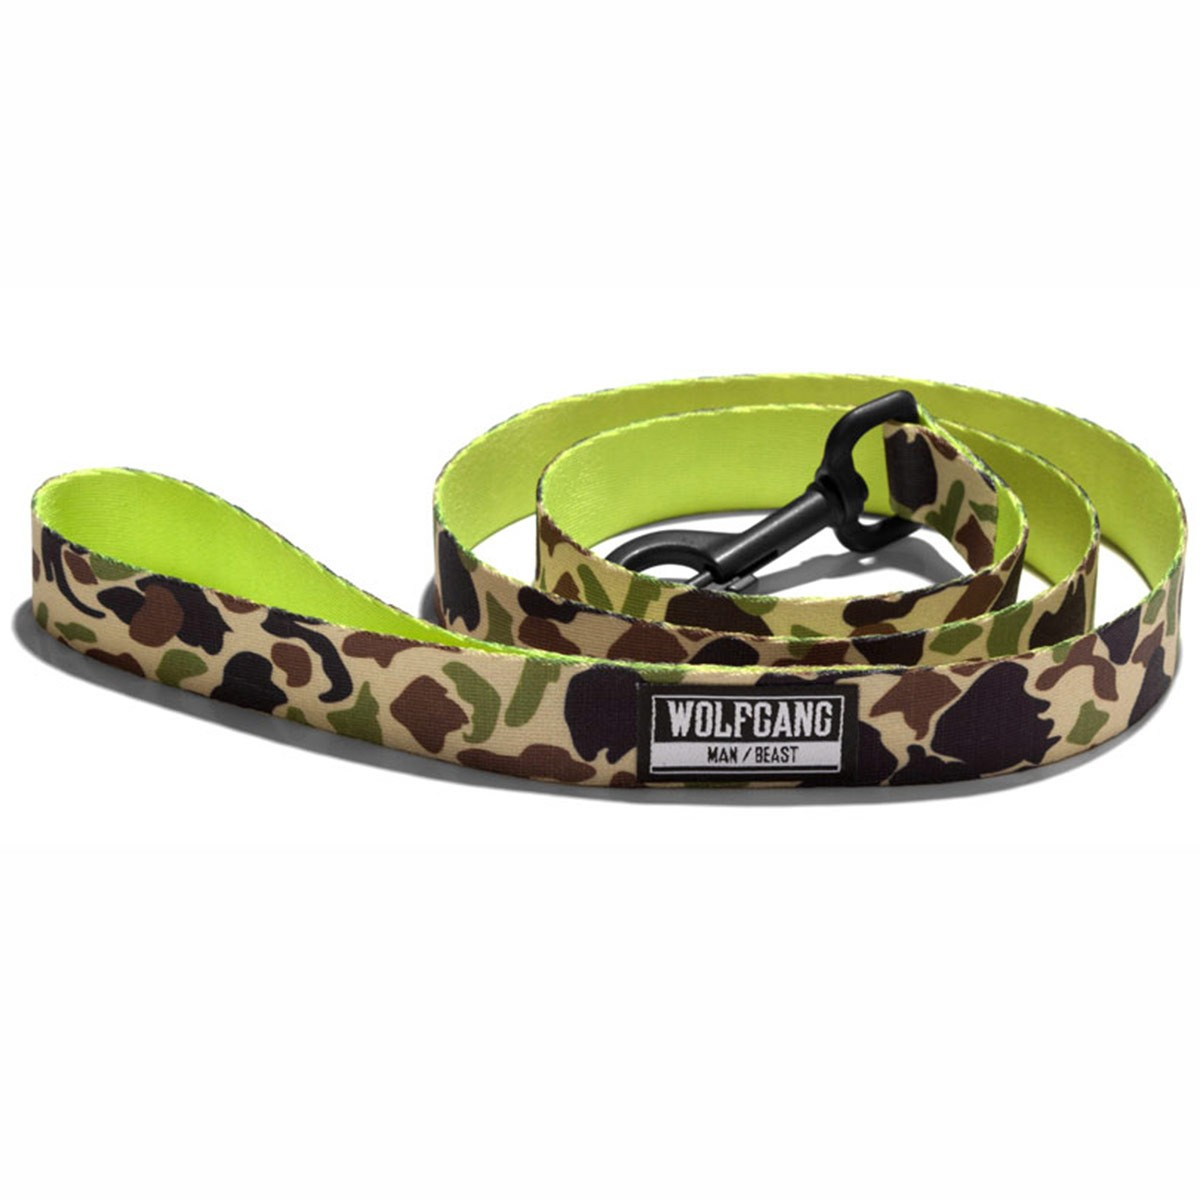 Wolfgang Duck Lime Dog Leash - 5/8in x 4ft